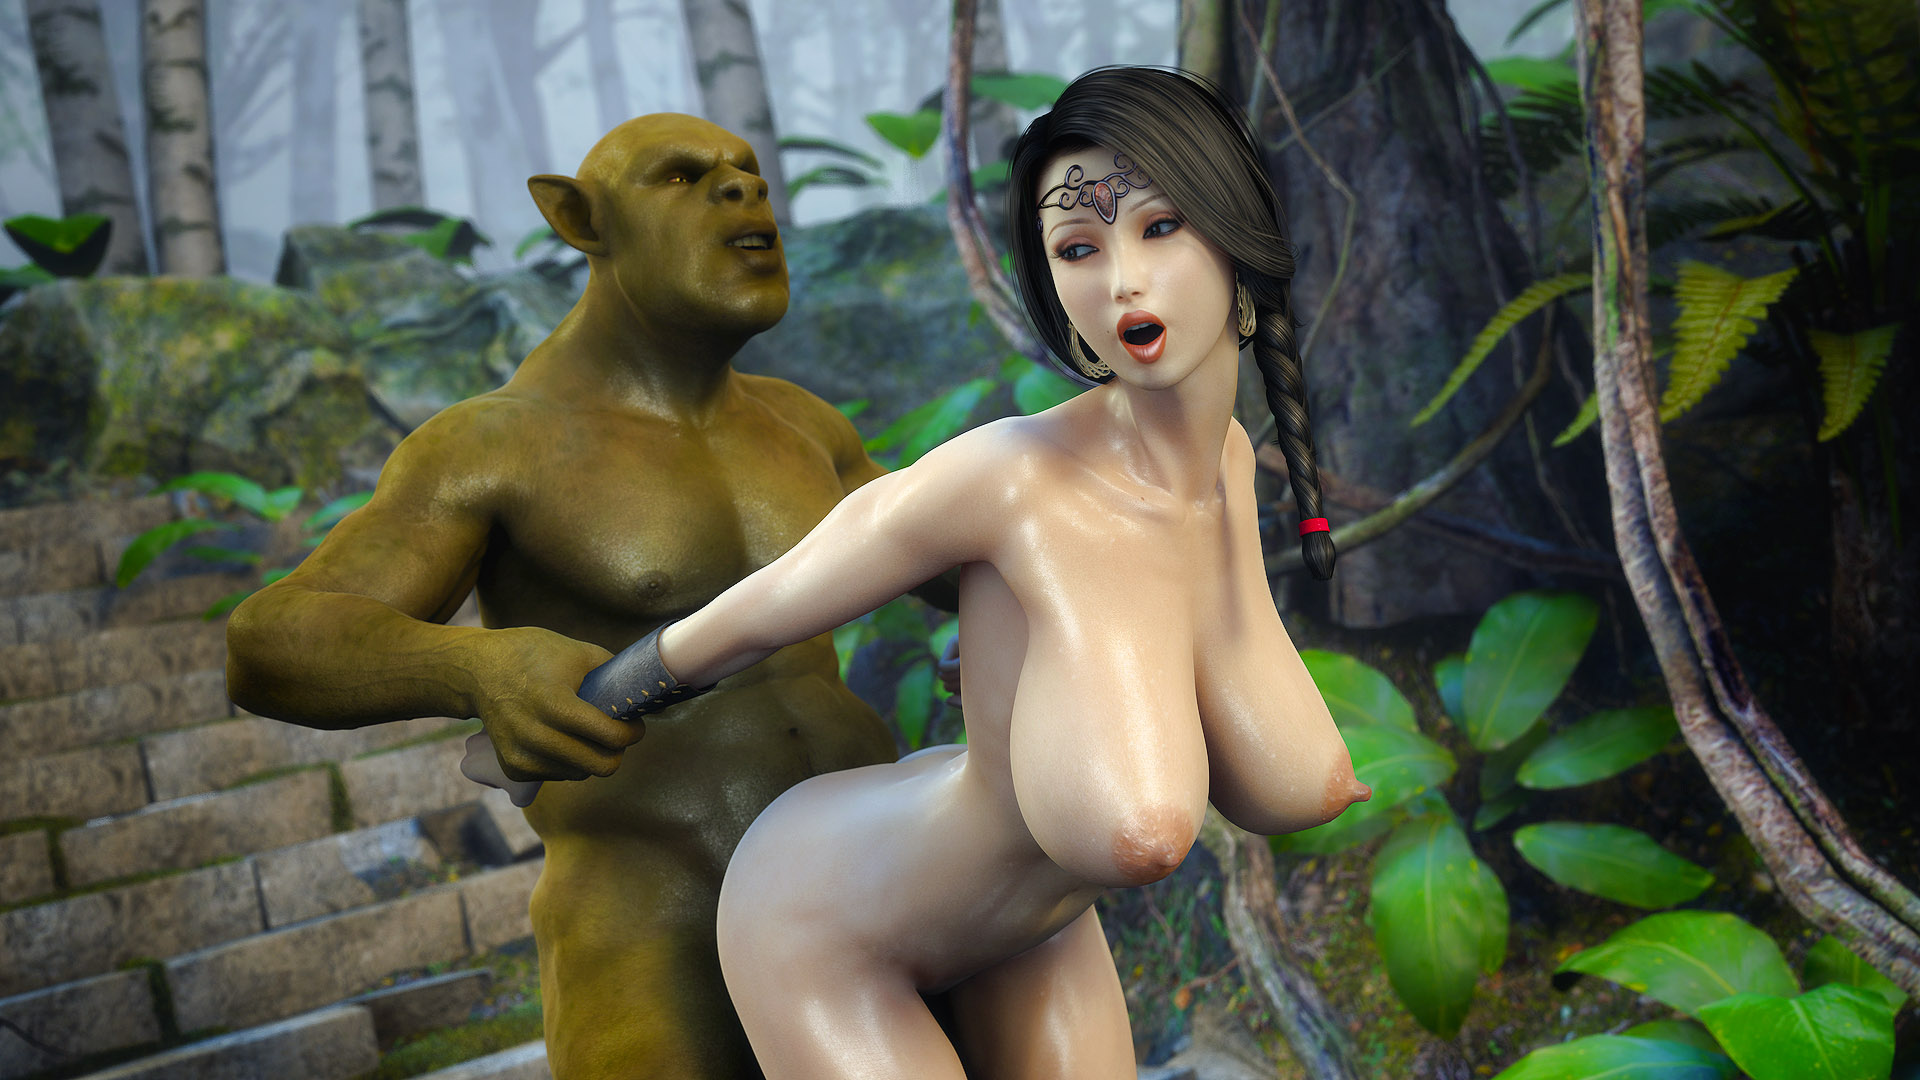 Dark elf vs orcs henati exposed tube